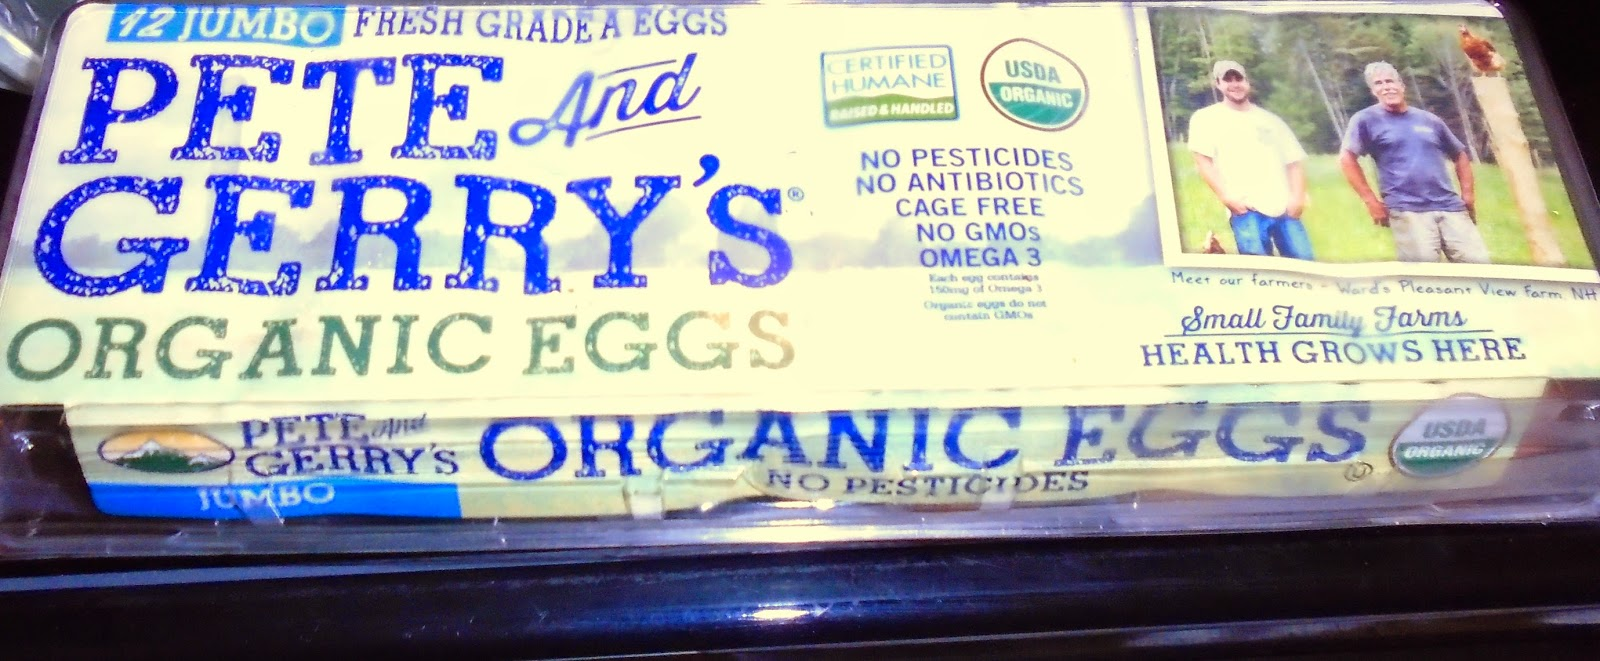 Pete and Gerry's Organic Eggs